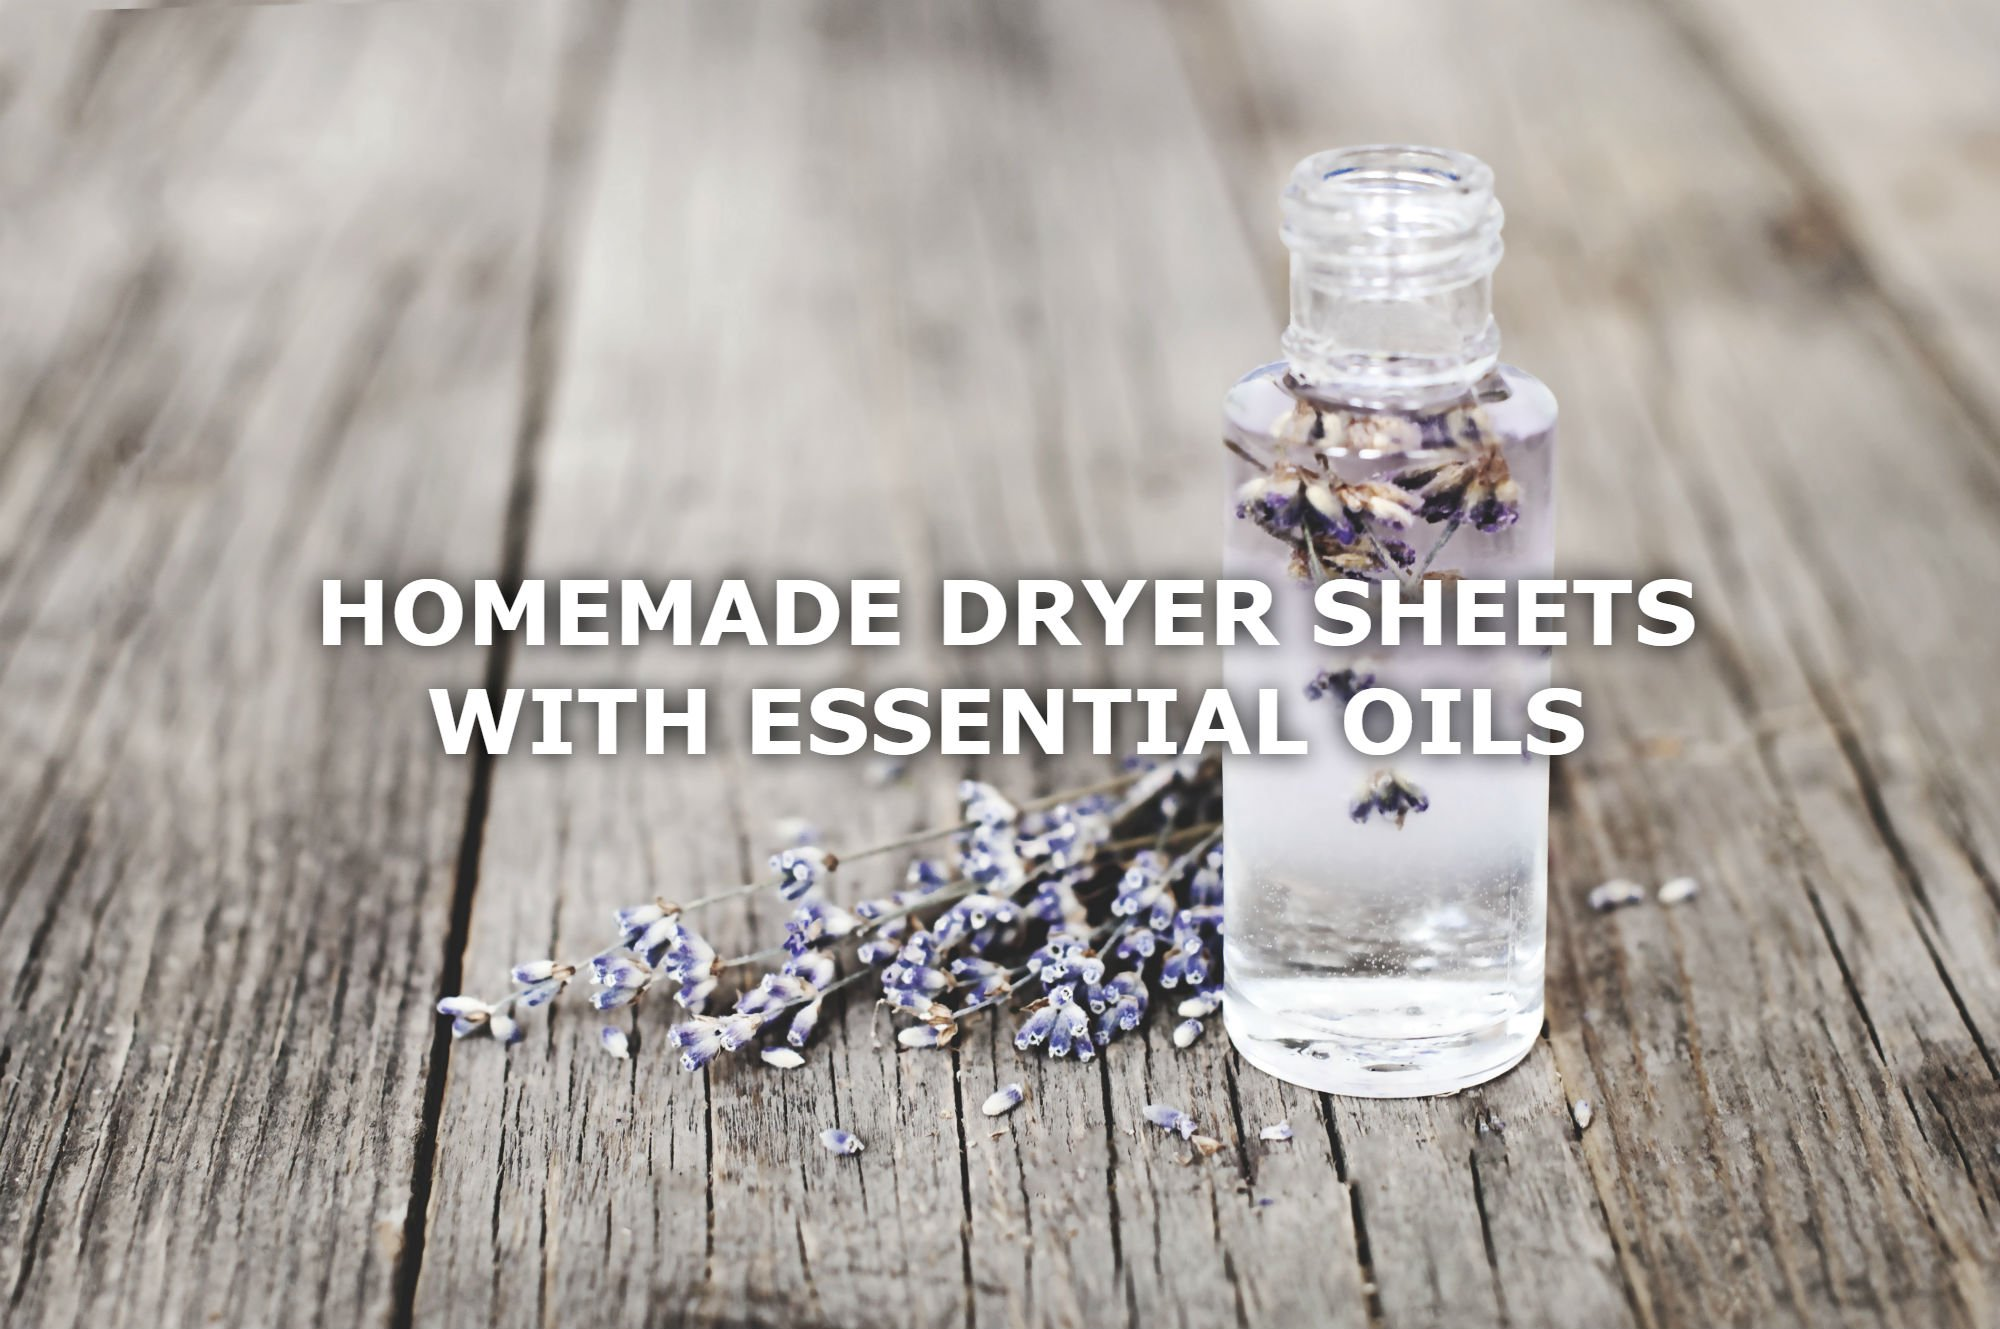 DIY OF THE WEEK: DIY DRYER SHEETS